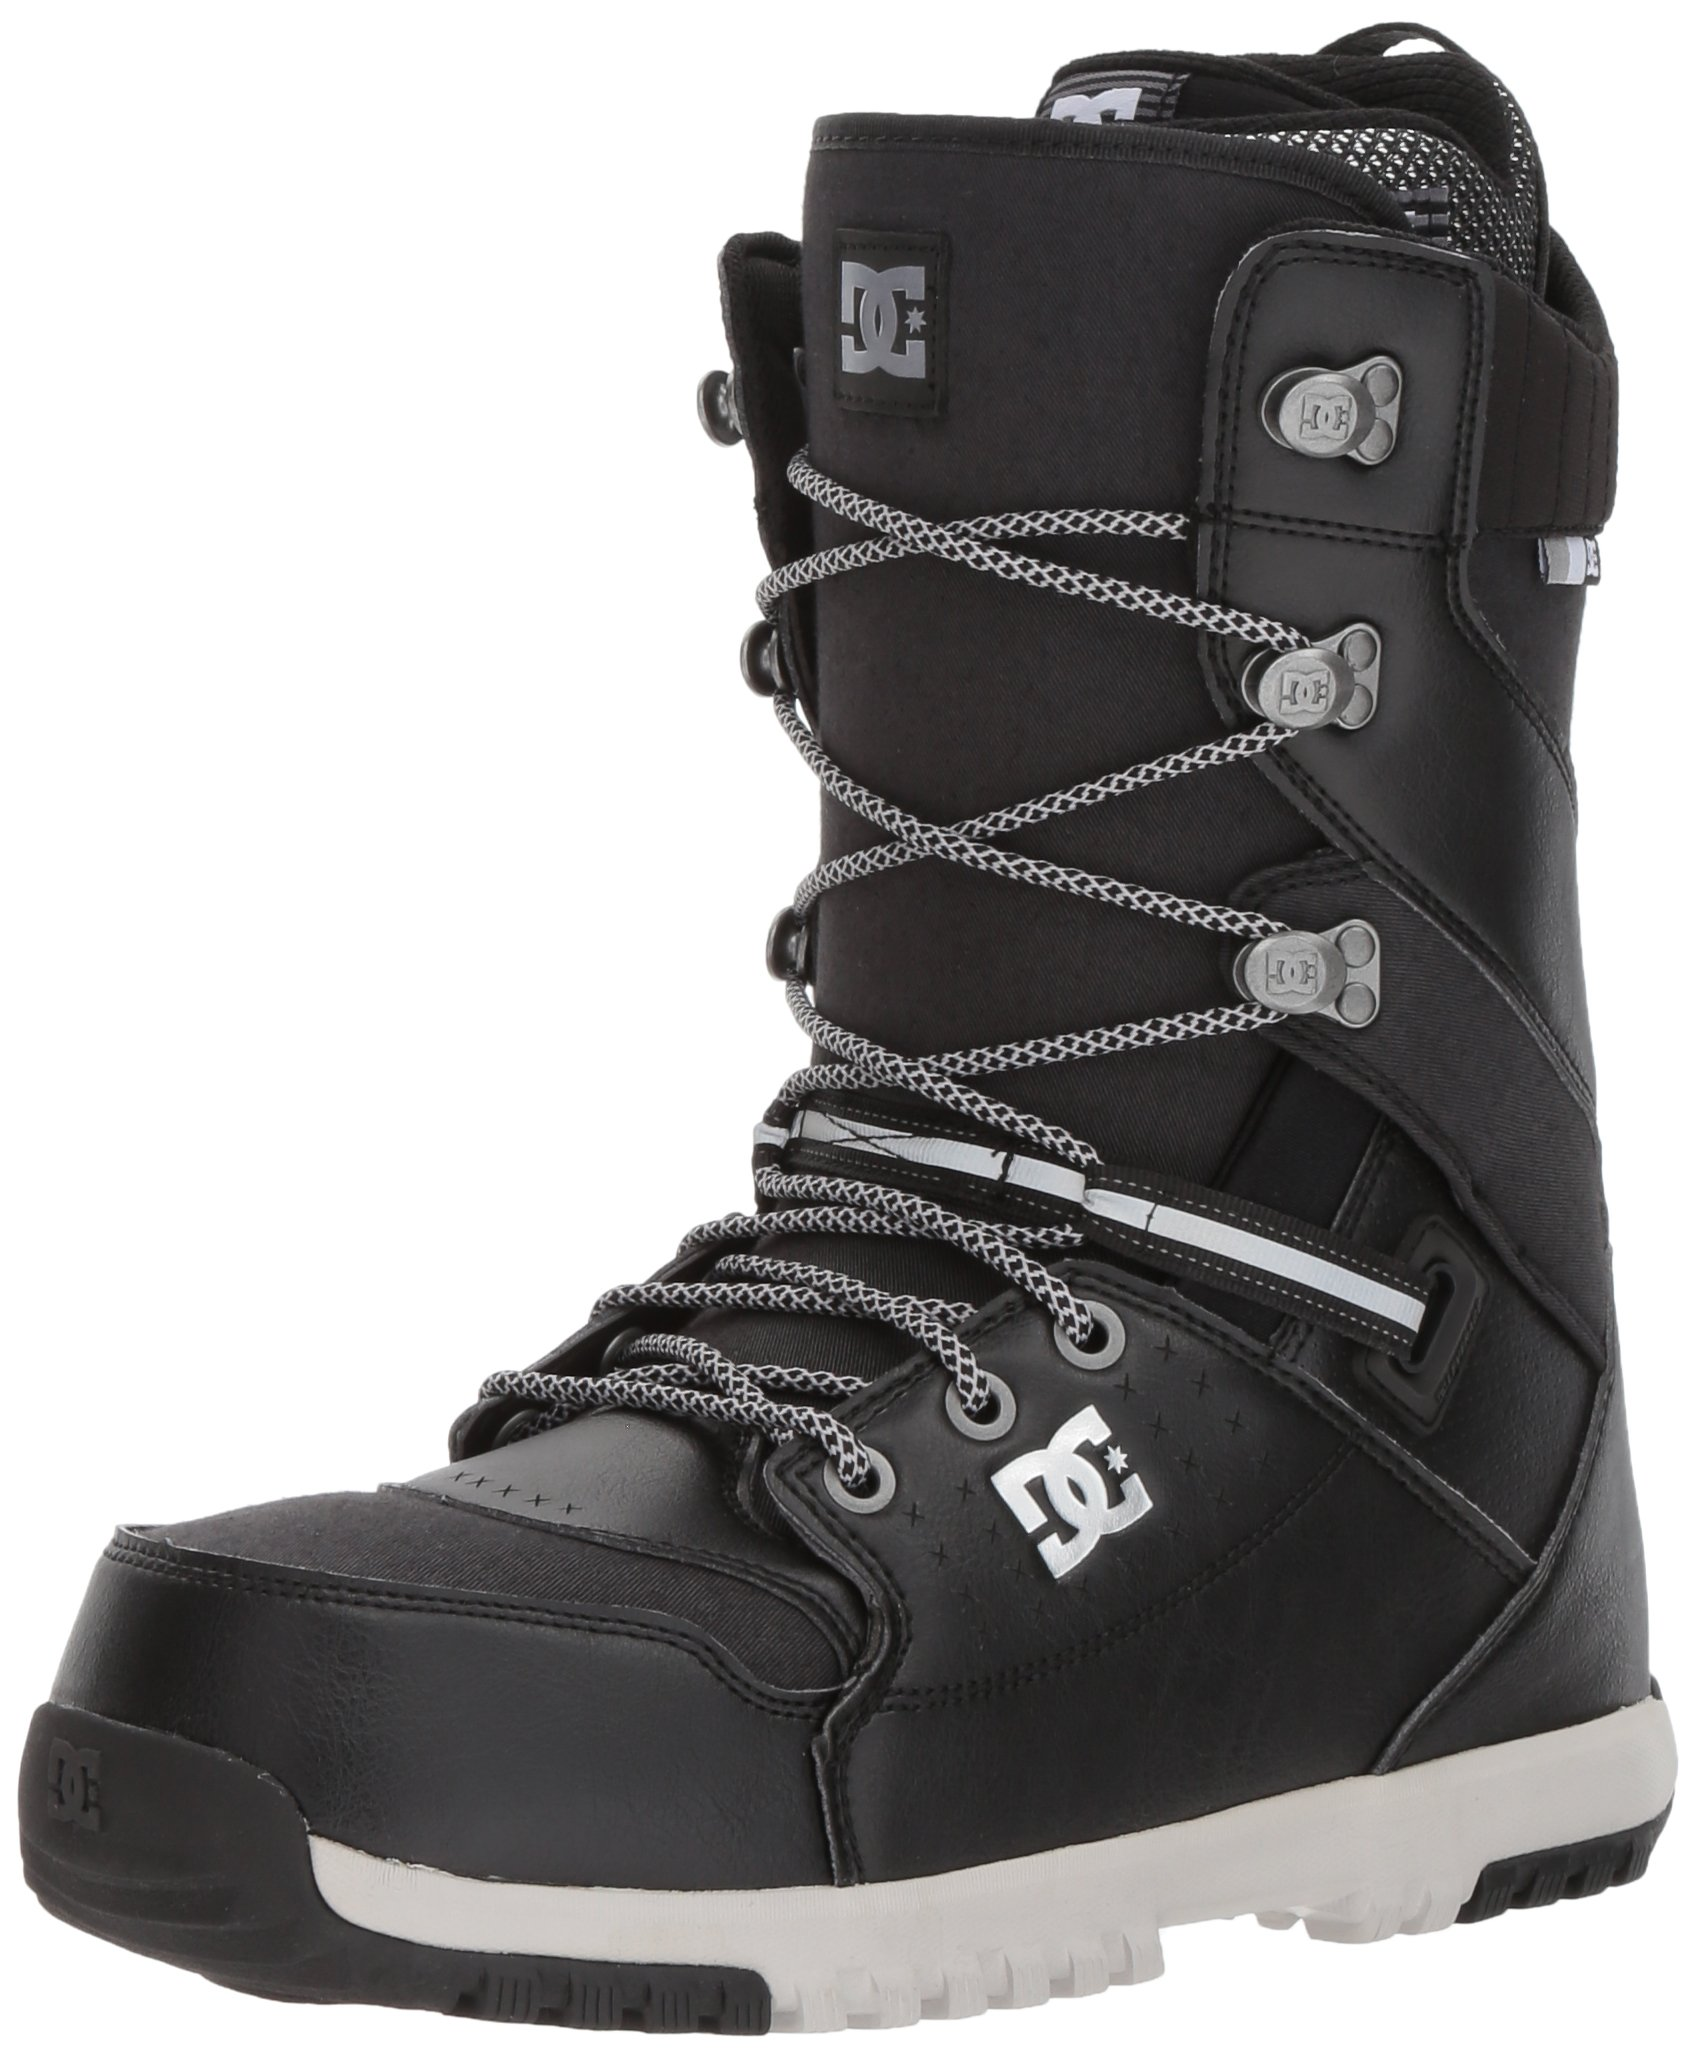 DC Men's Mutiny Lace Snowboard Boots, Black, 9.5 by DC